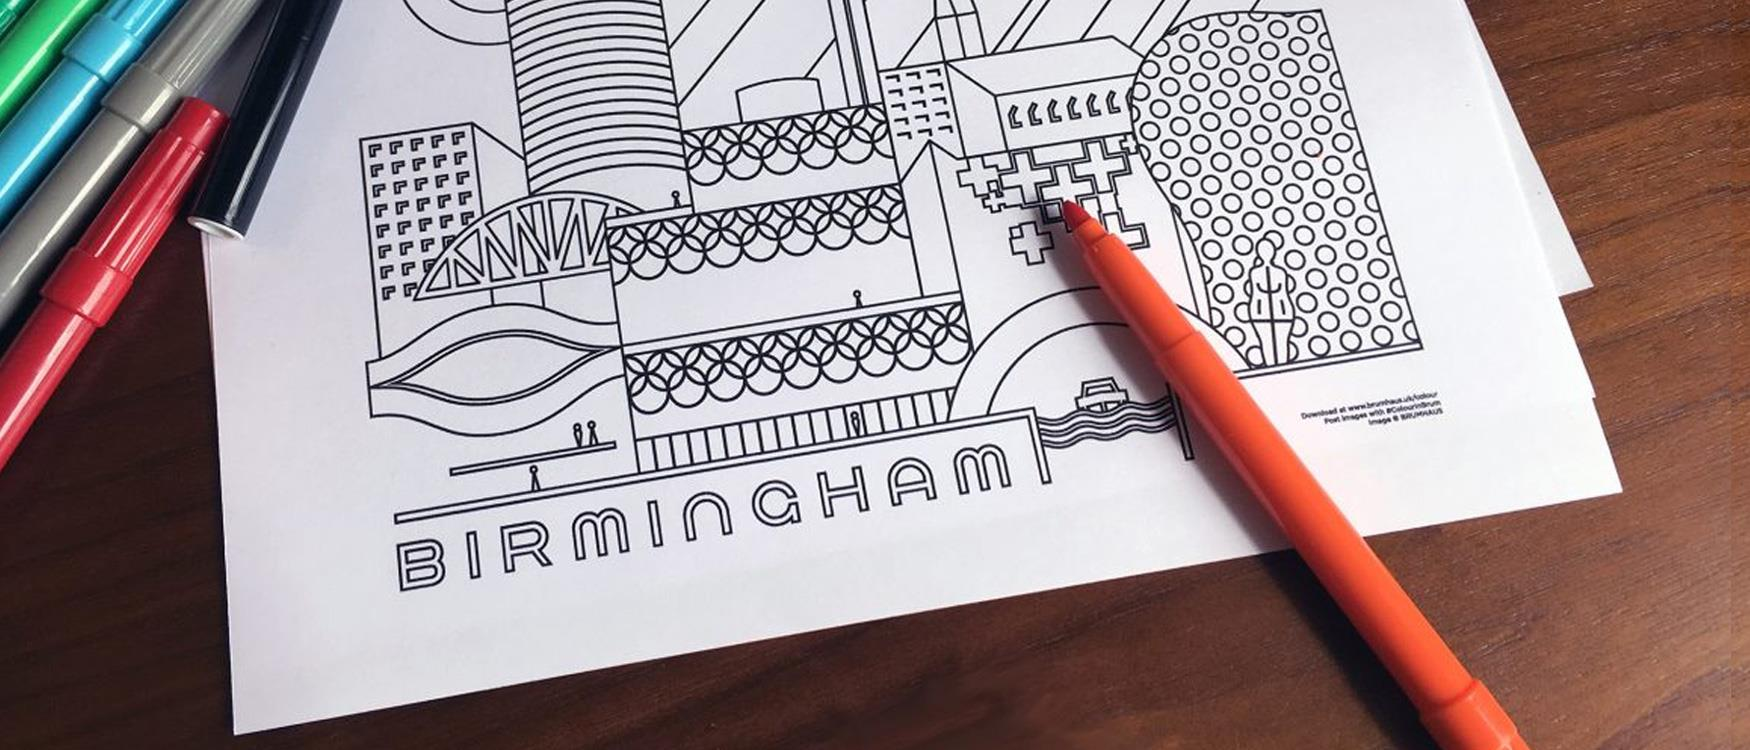 To keep the troops at home busy download Brumhaus free colouring-in sheets.